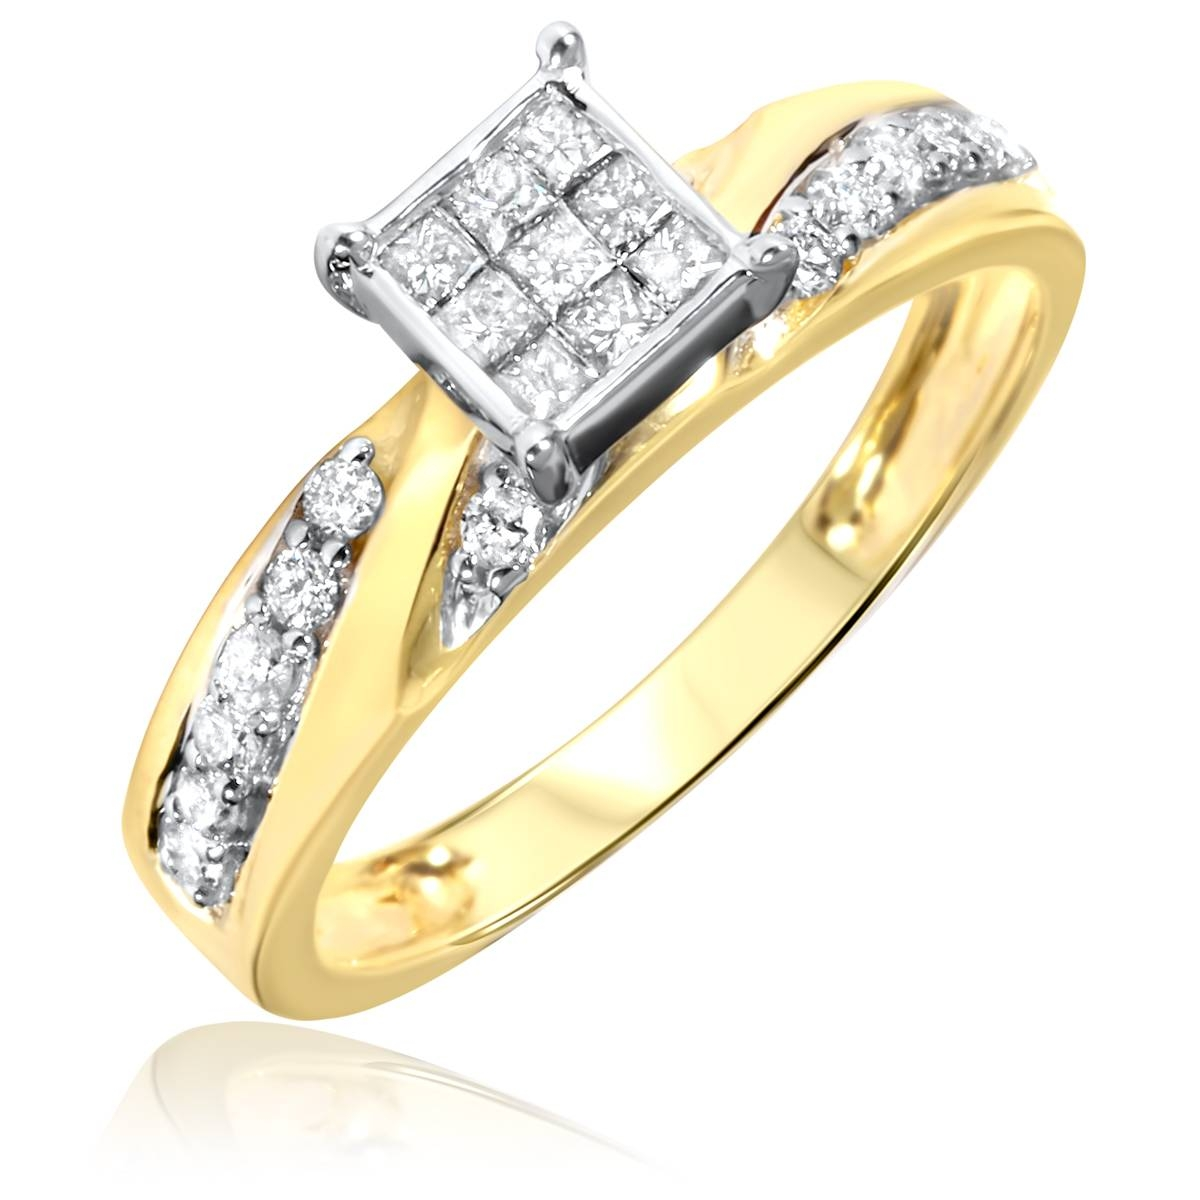 1 Carat Diamond Trio Wedding Ring Set 10K Yellow Gold For Engagement Rings And Wedding Ring Sets (Gallery 9 of 15)